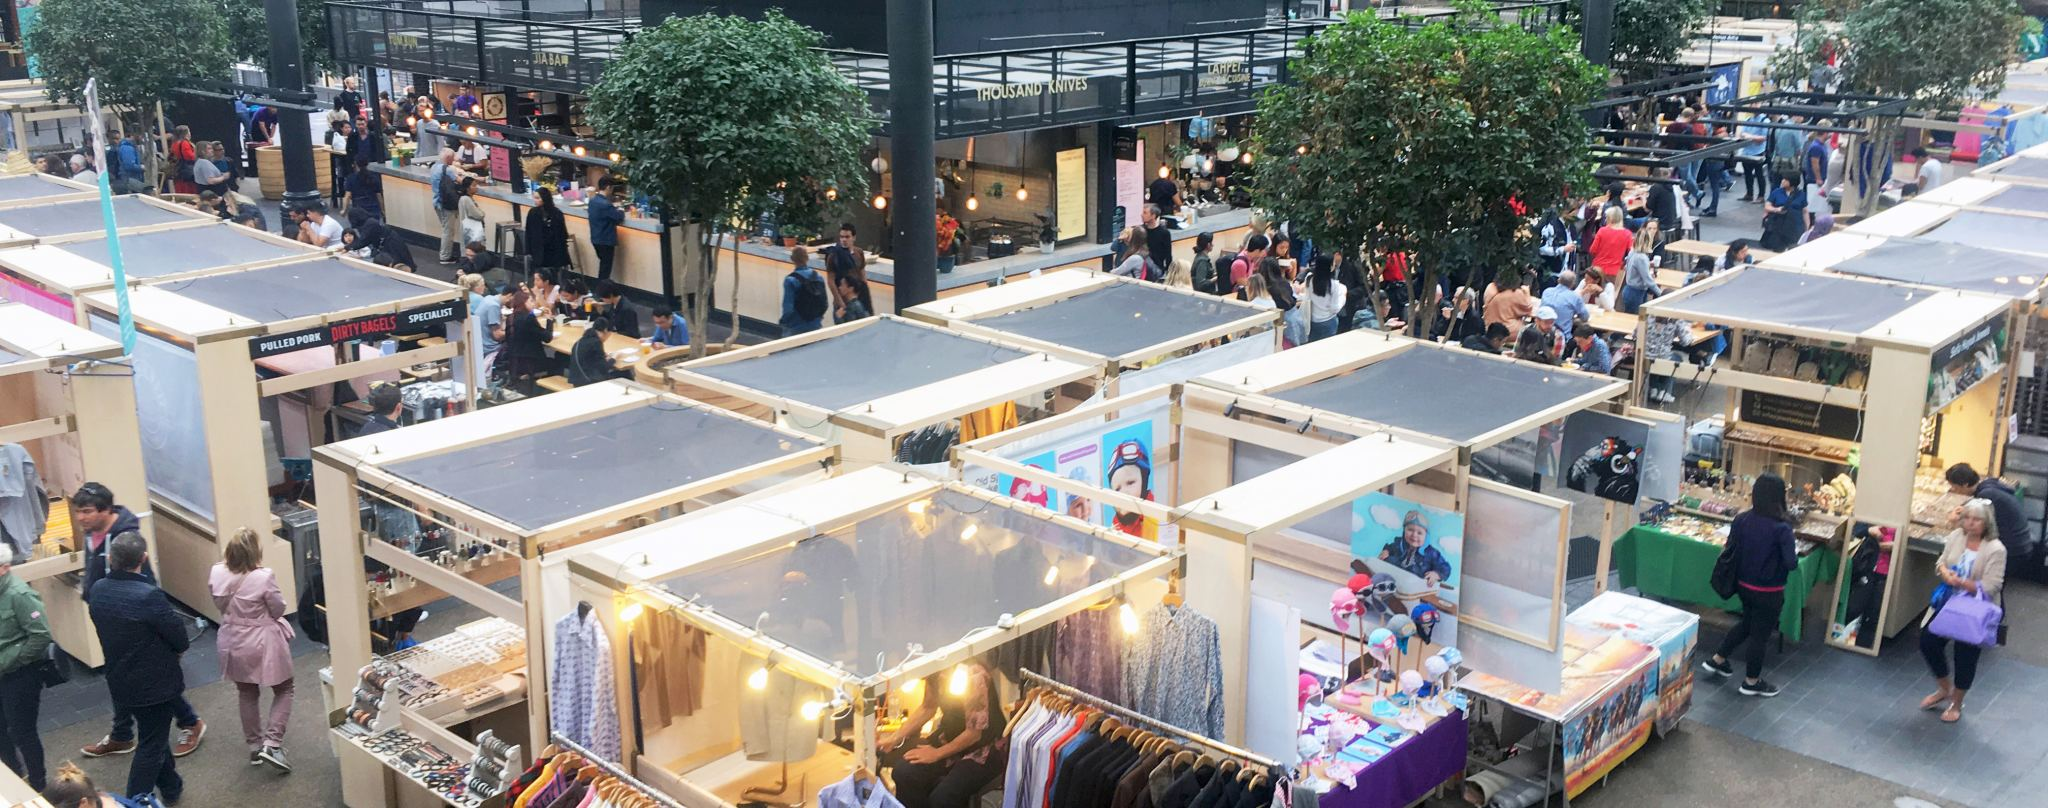 Pop Up Markets At Spitalfields